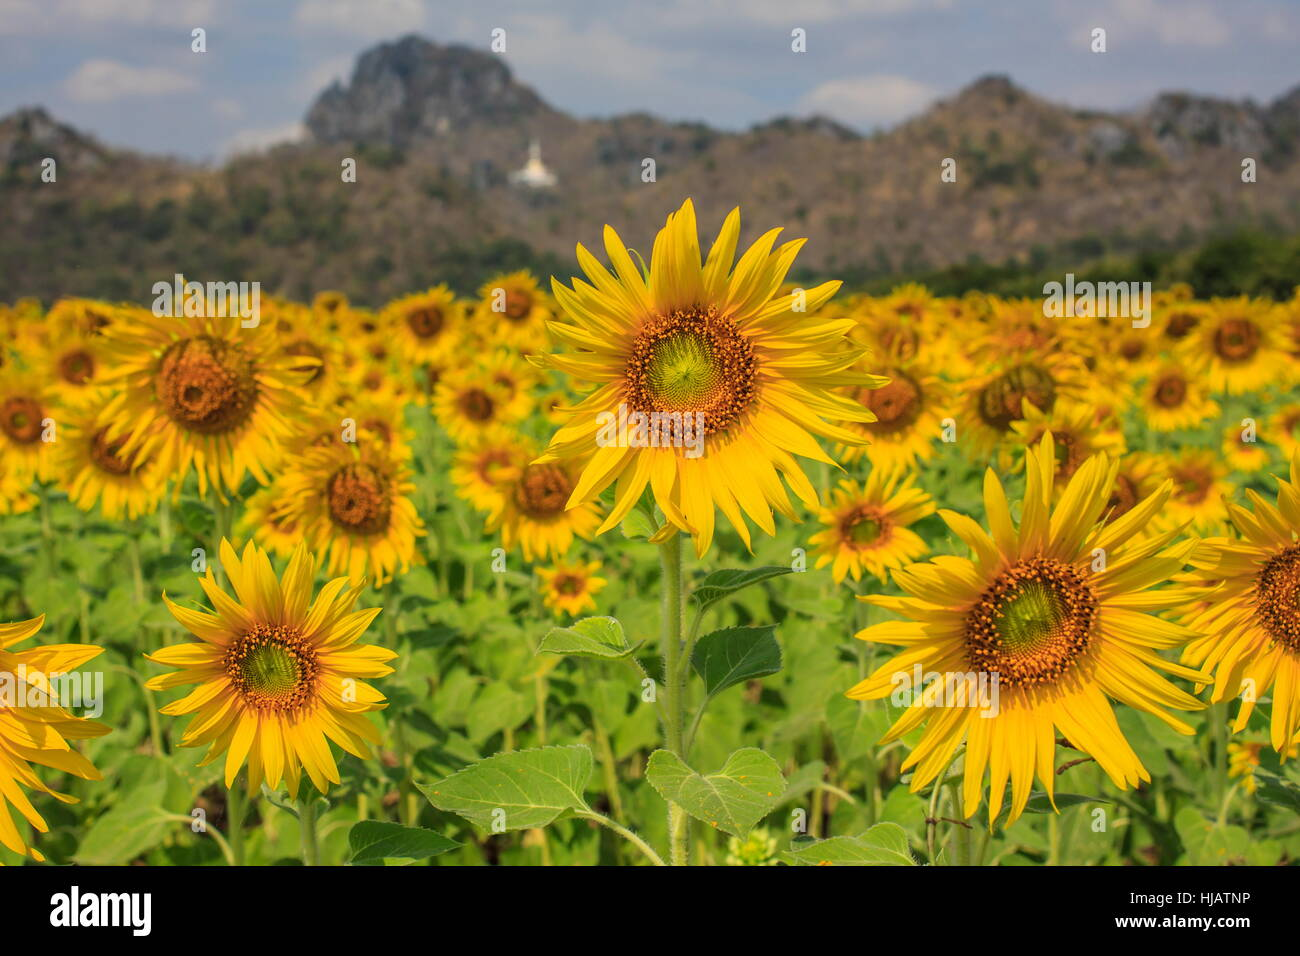 Sunflower plant in the field, Thailand Stock Photo